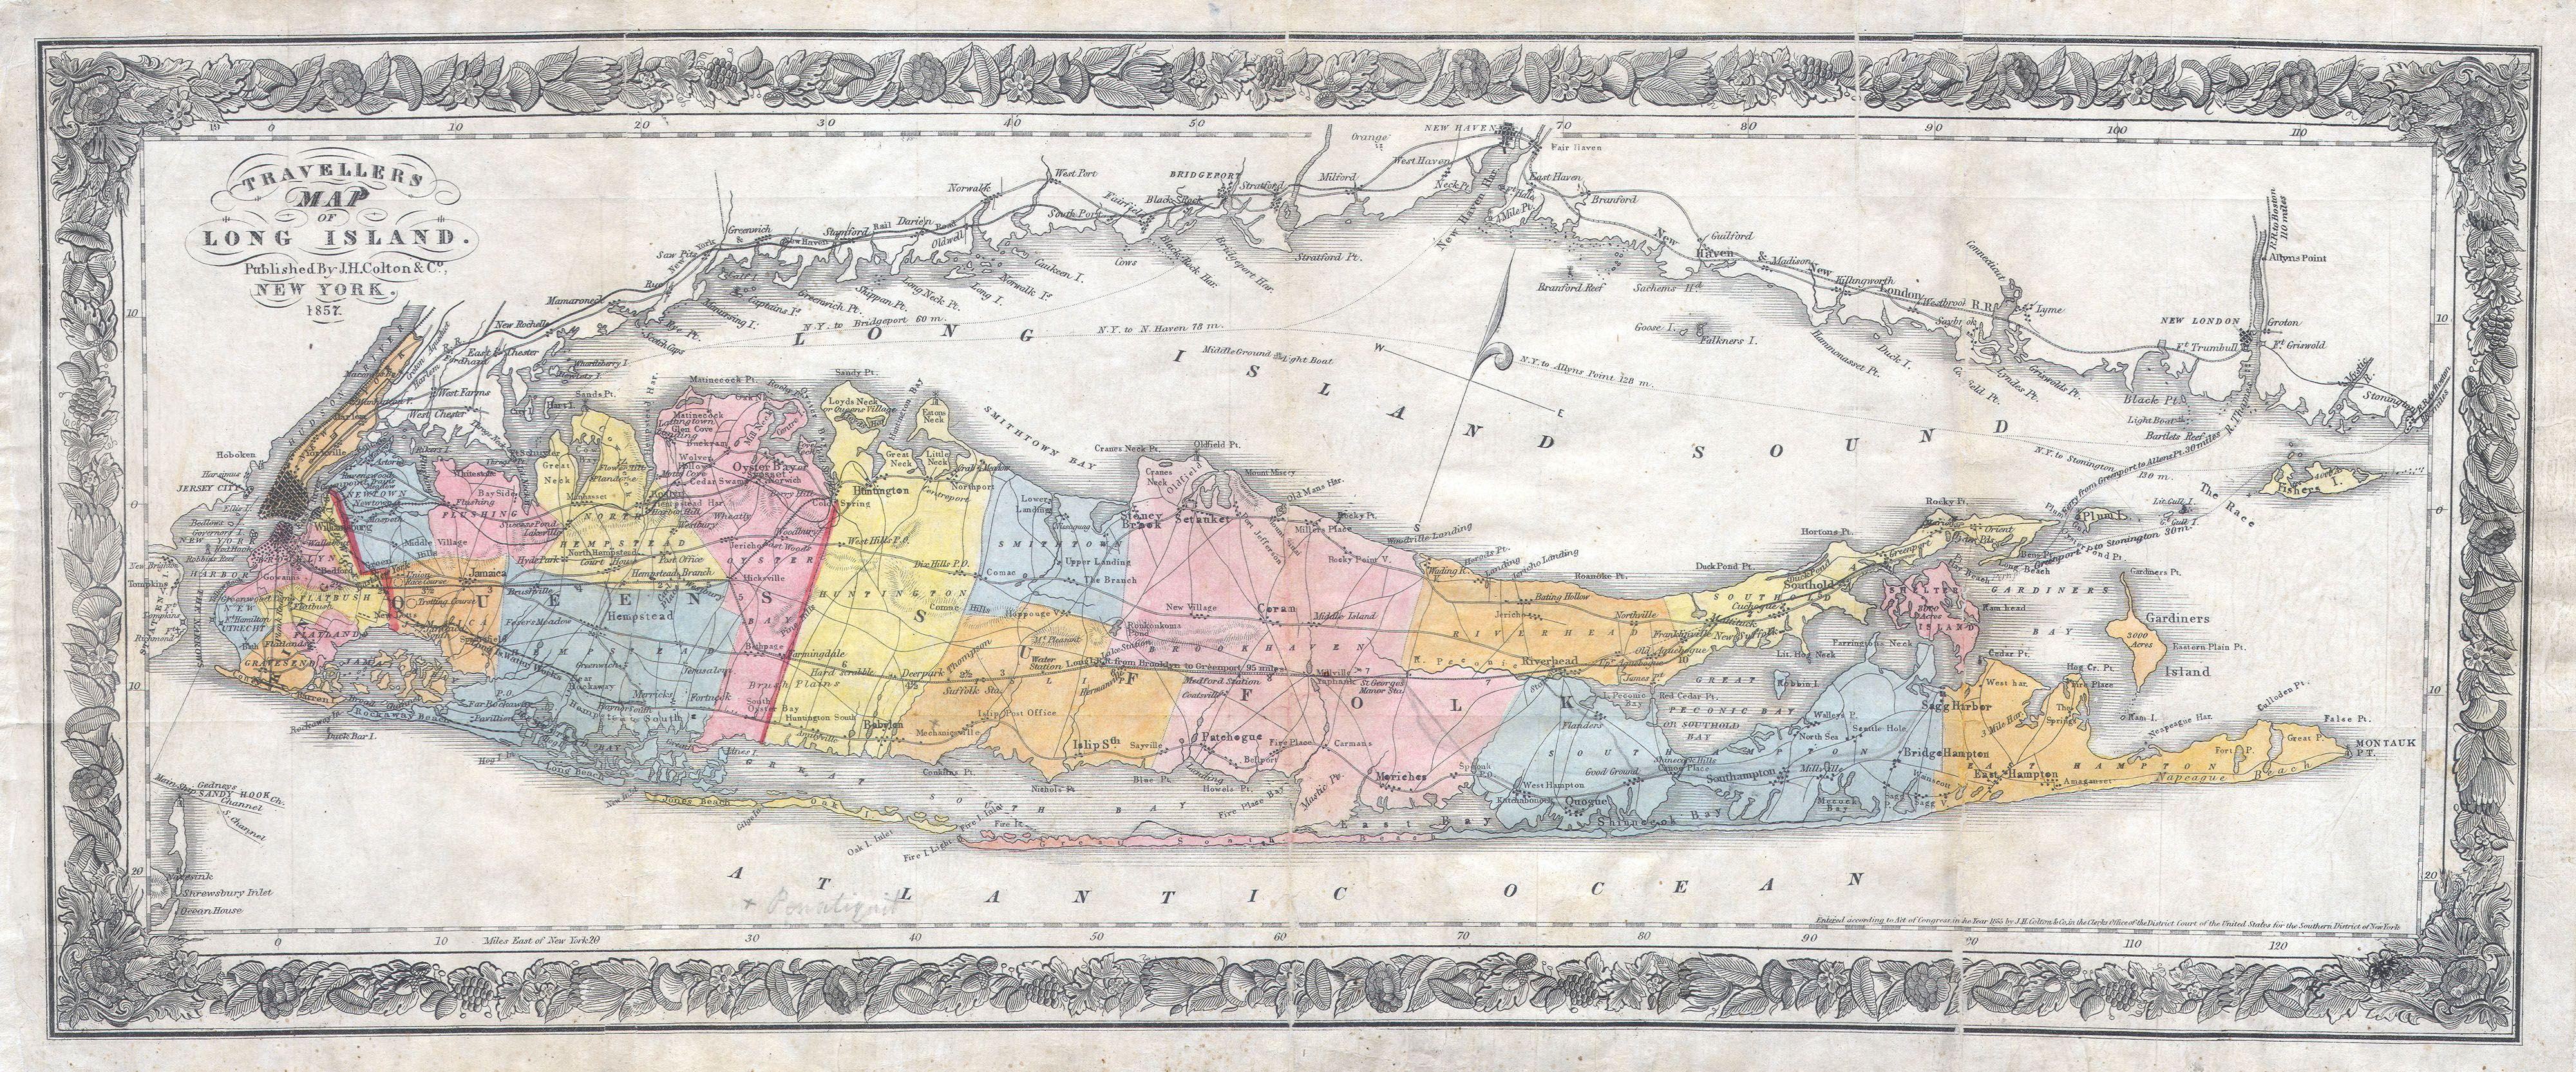 Map Of New York And Long Island.Long Island History Local History